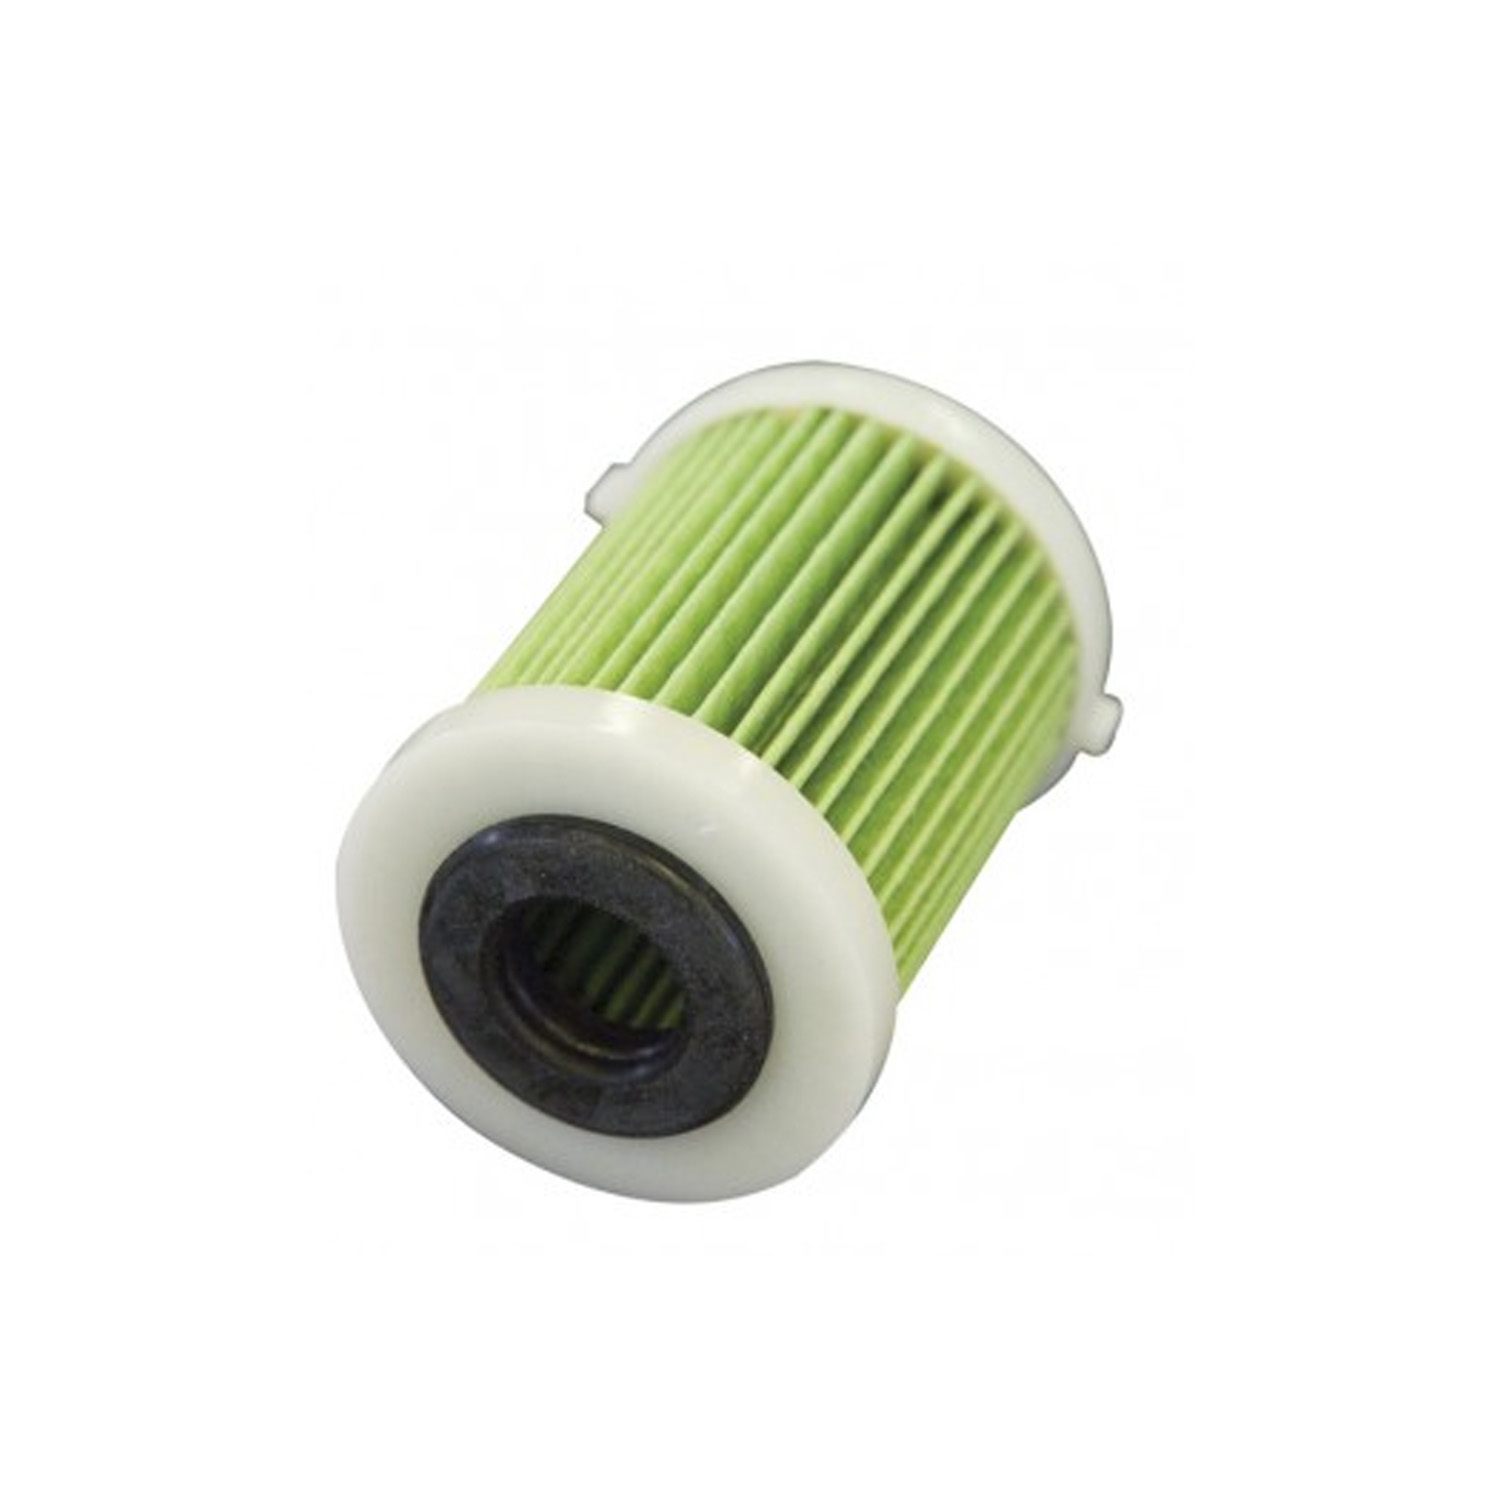 Image is loading Yamaha-New-OEM-Fuel-Gas-Filter-Cartridge-Insert-